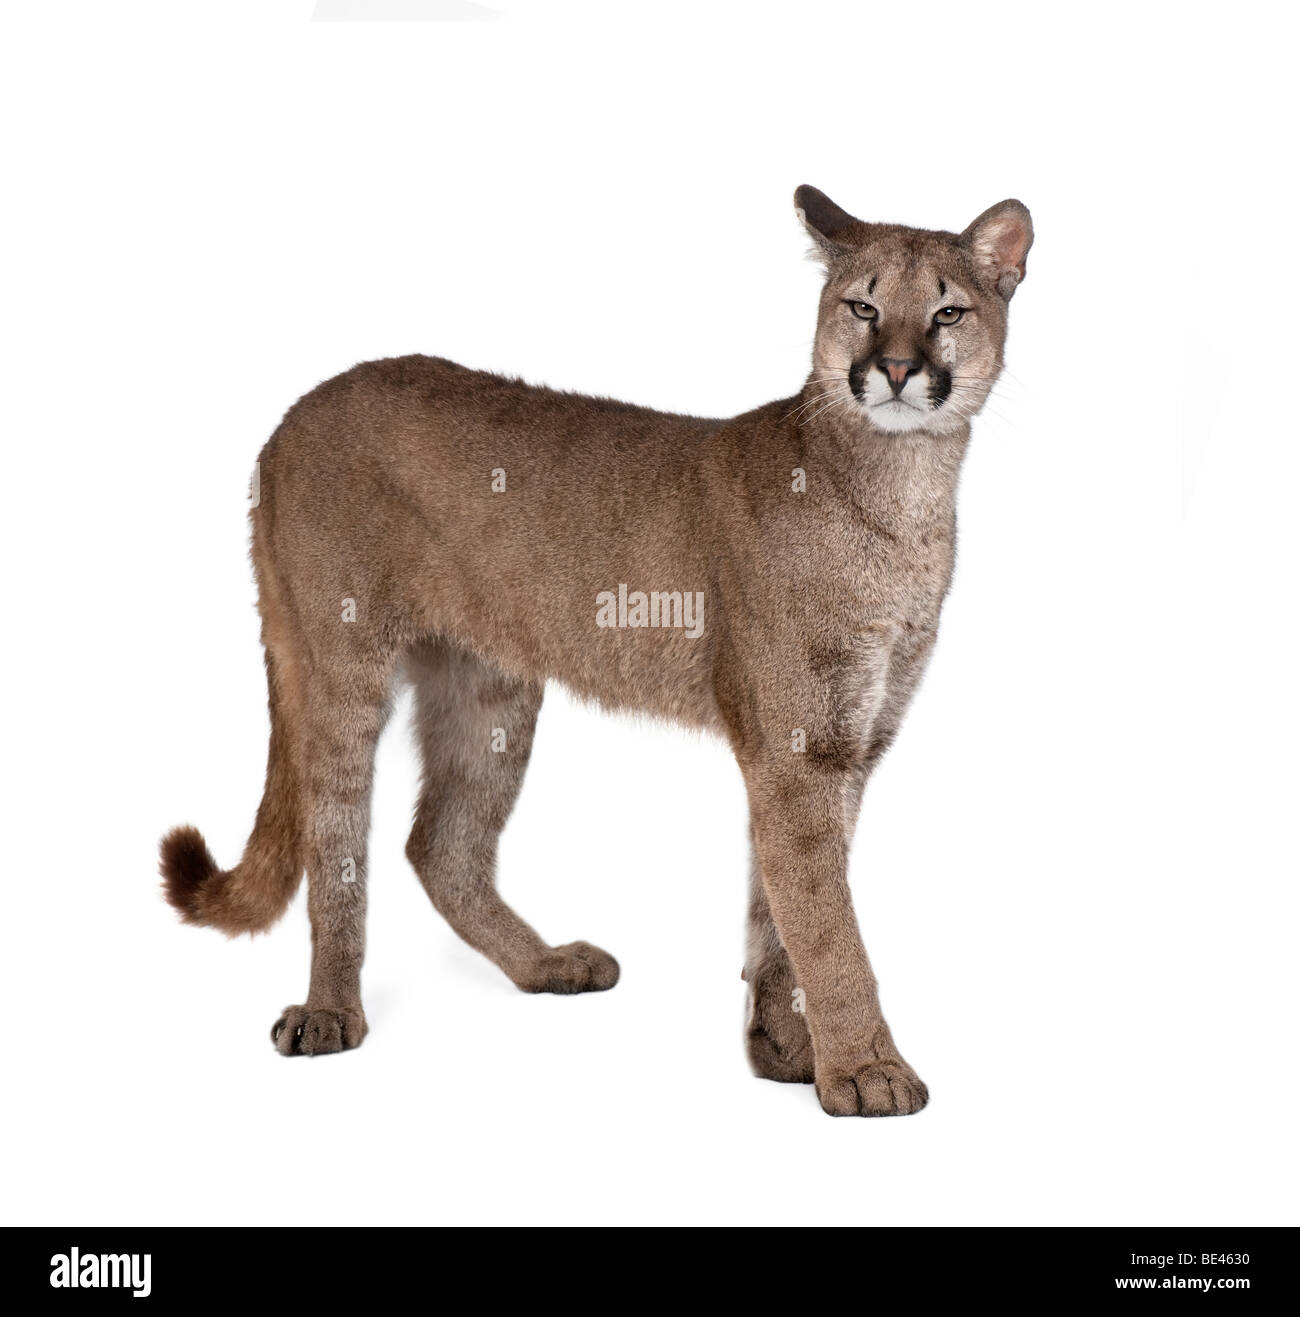 Puma cub, Puma concolor, 1 year old, standing against white background, studio shot - Stock Image